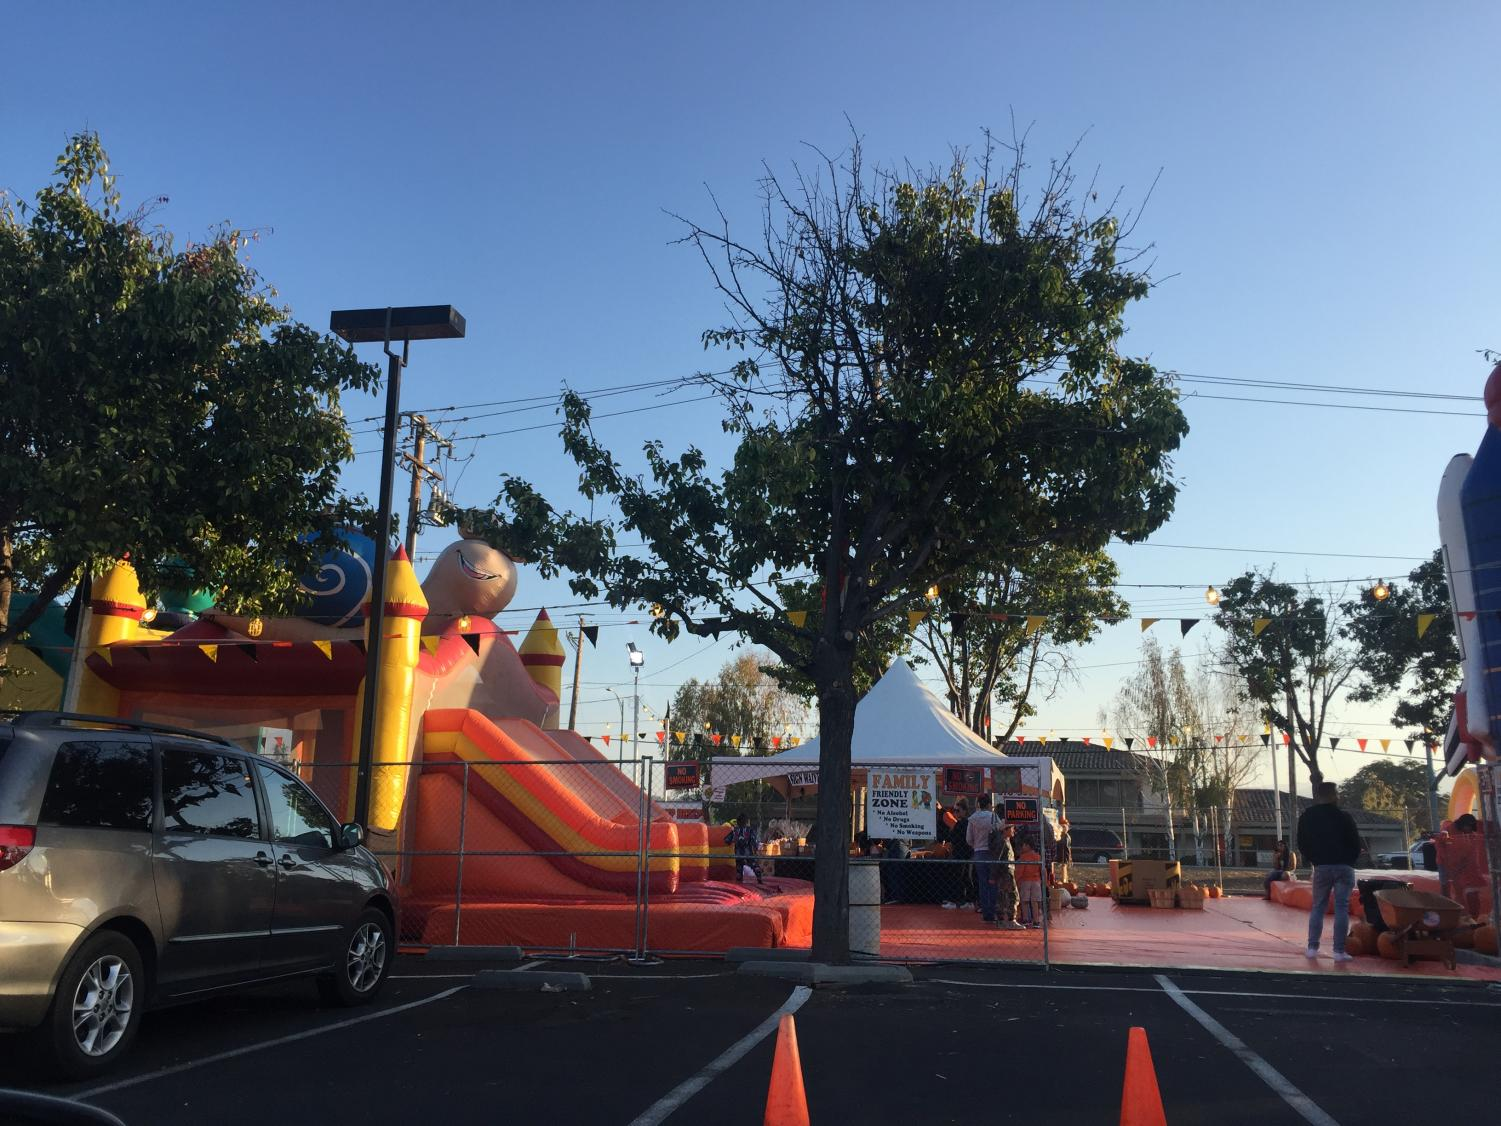 A bounce house at the pumpkin patch off of Blossom Hill Ave. in San Jose on October 22, 2018. (Isabel Mercado / Lincoln Lion Tales)